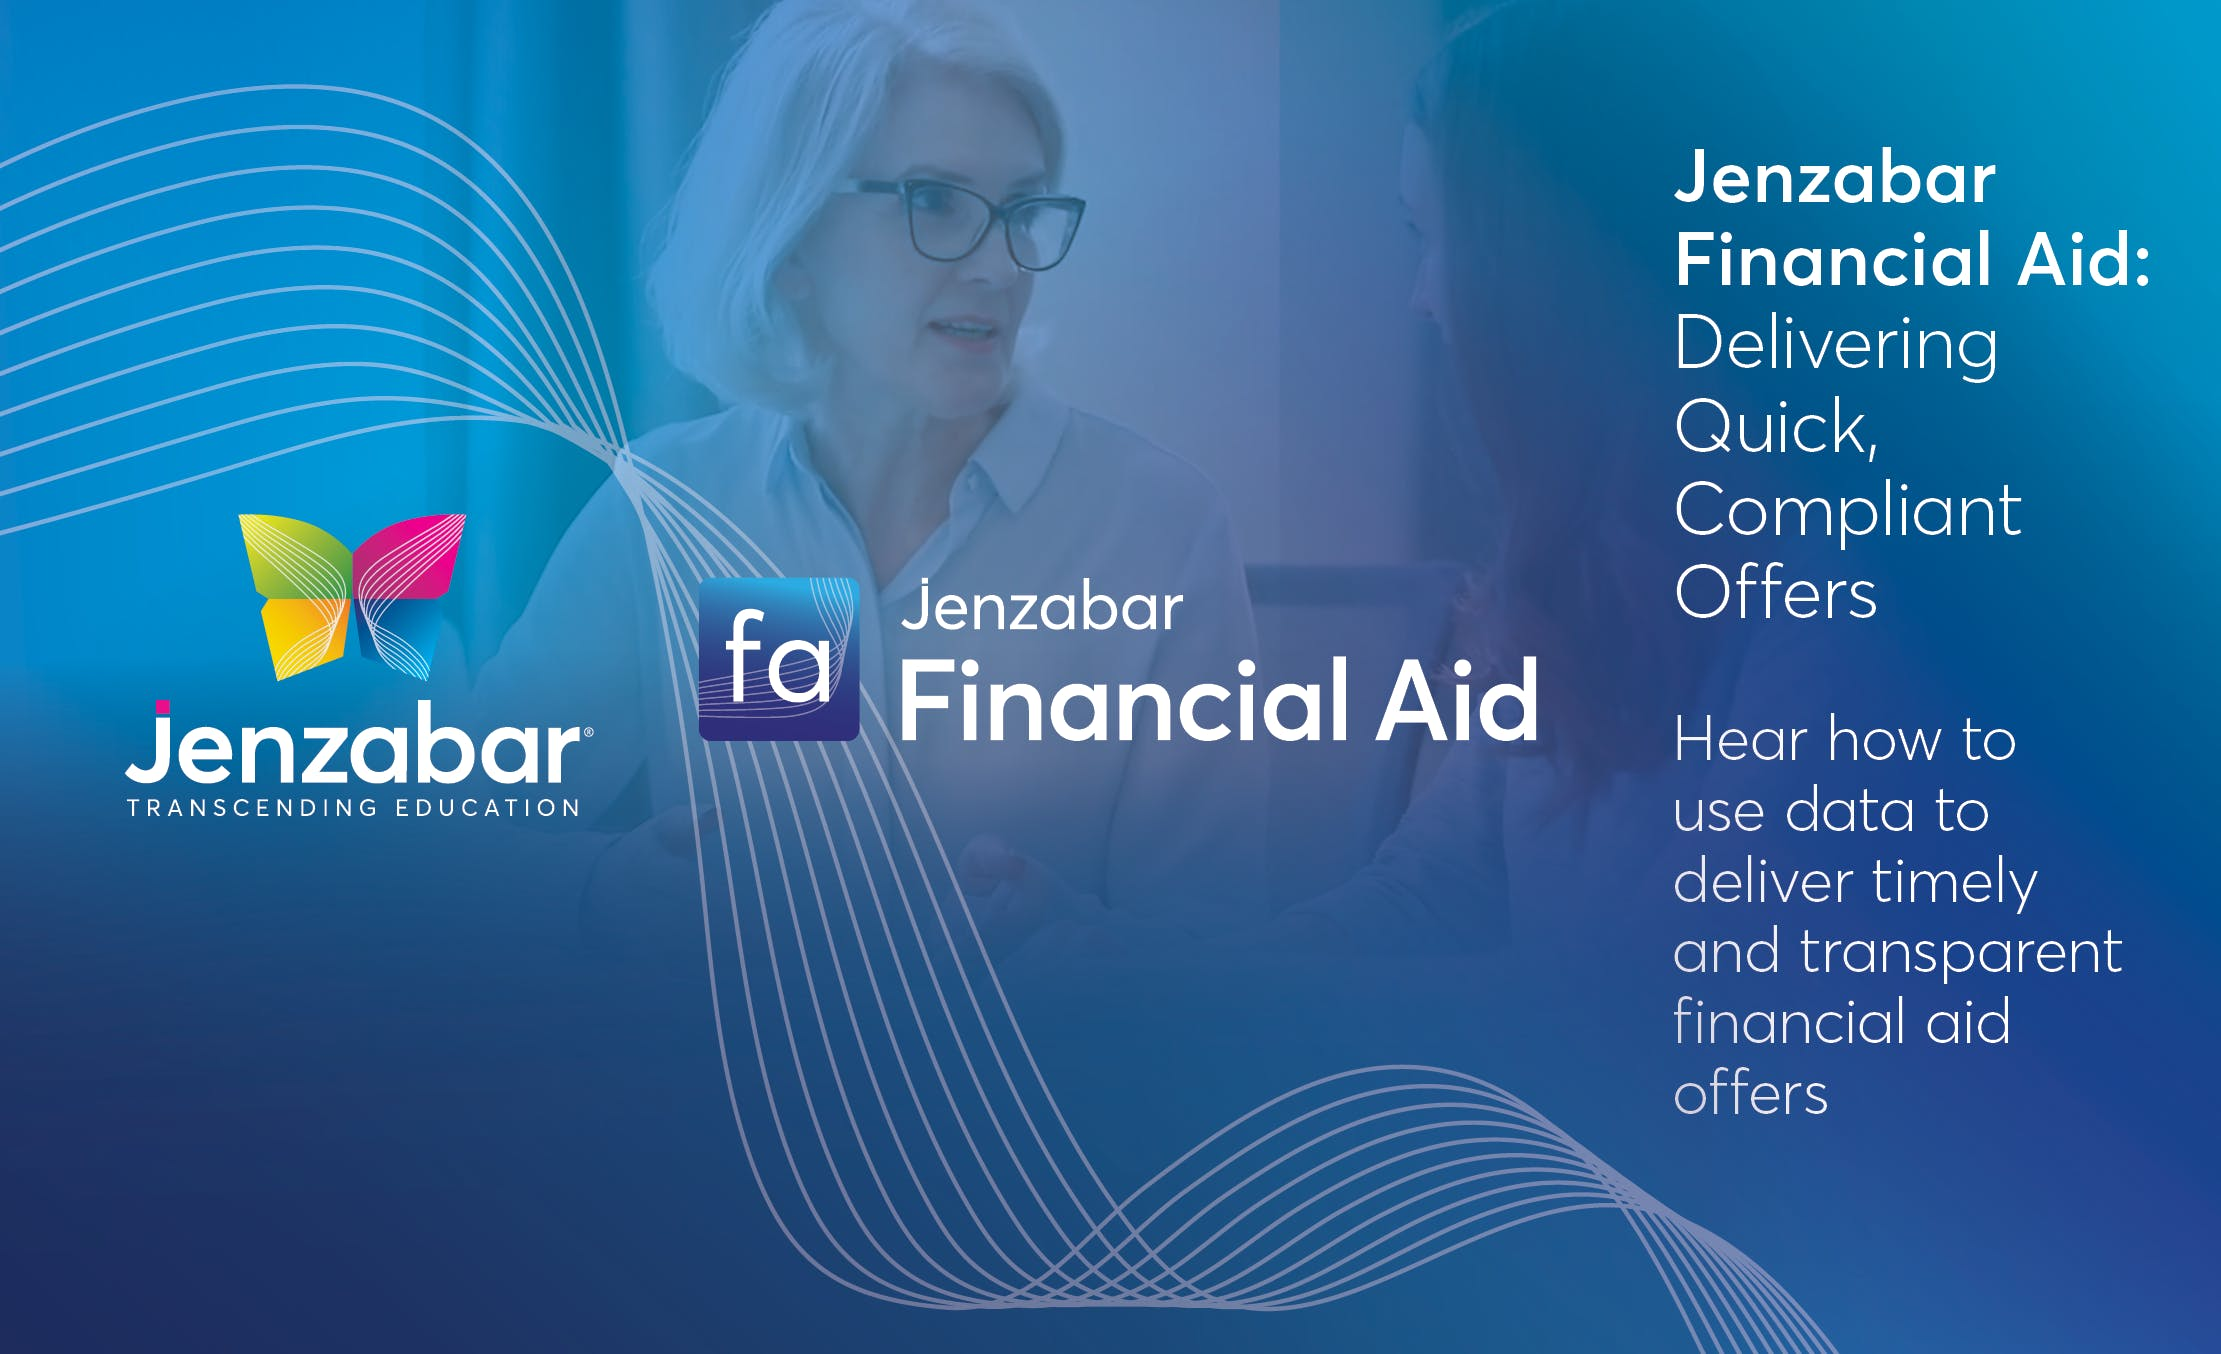 Jenzabar Financial Aid: Delivering Quick, Compliant Offers